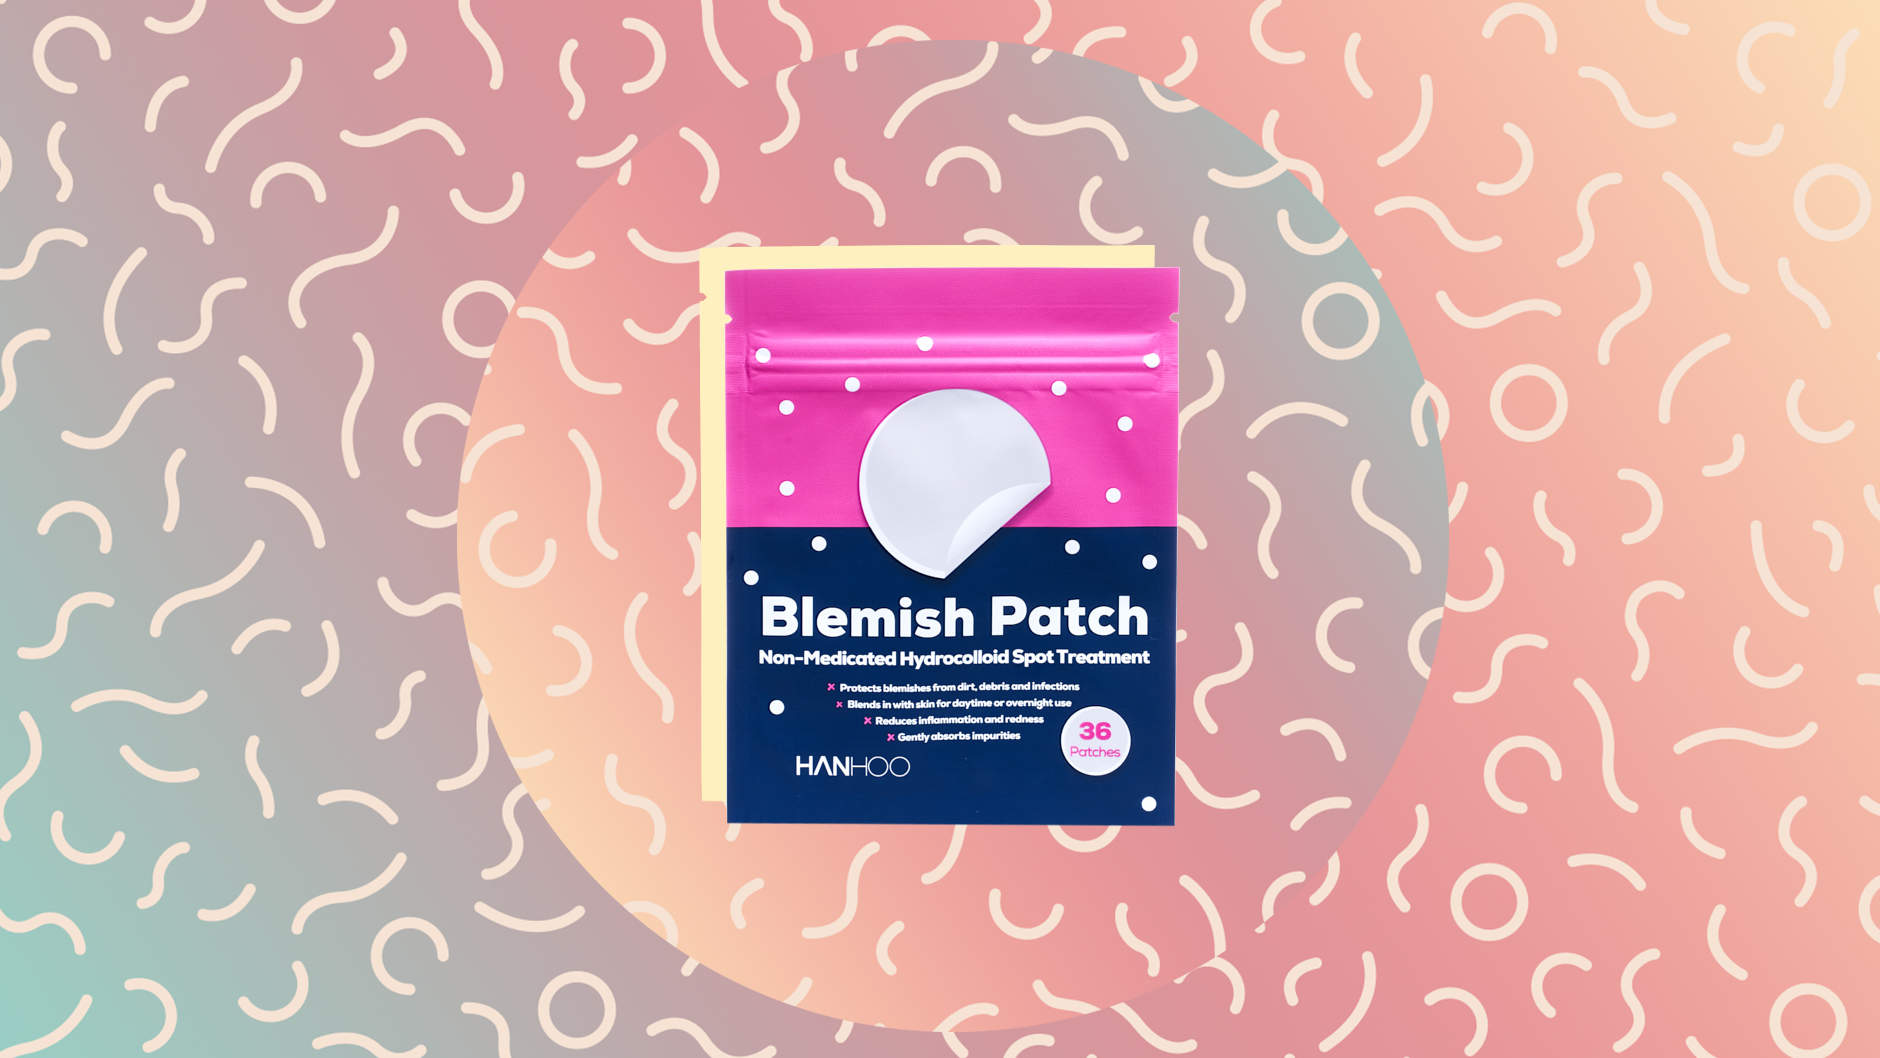 blemish acne woman health skin flight patch blemish beauty product